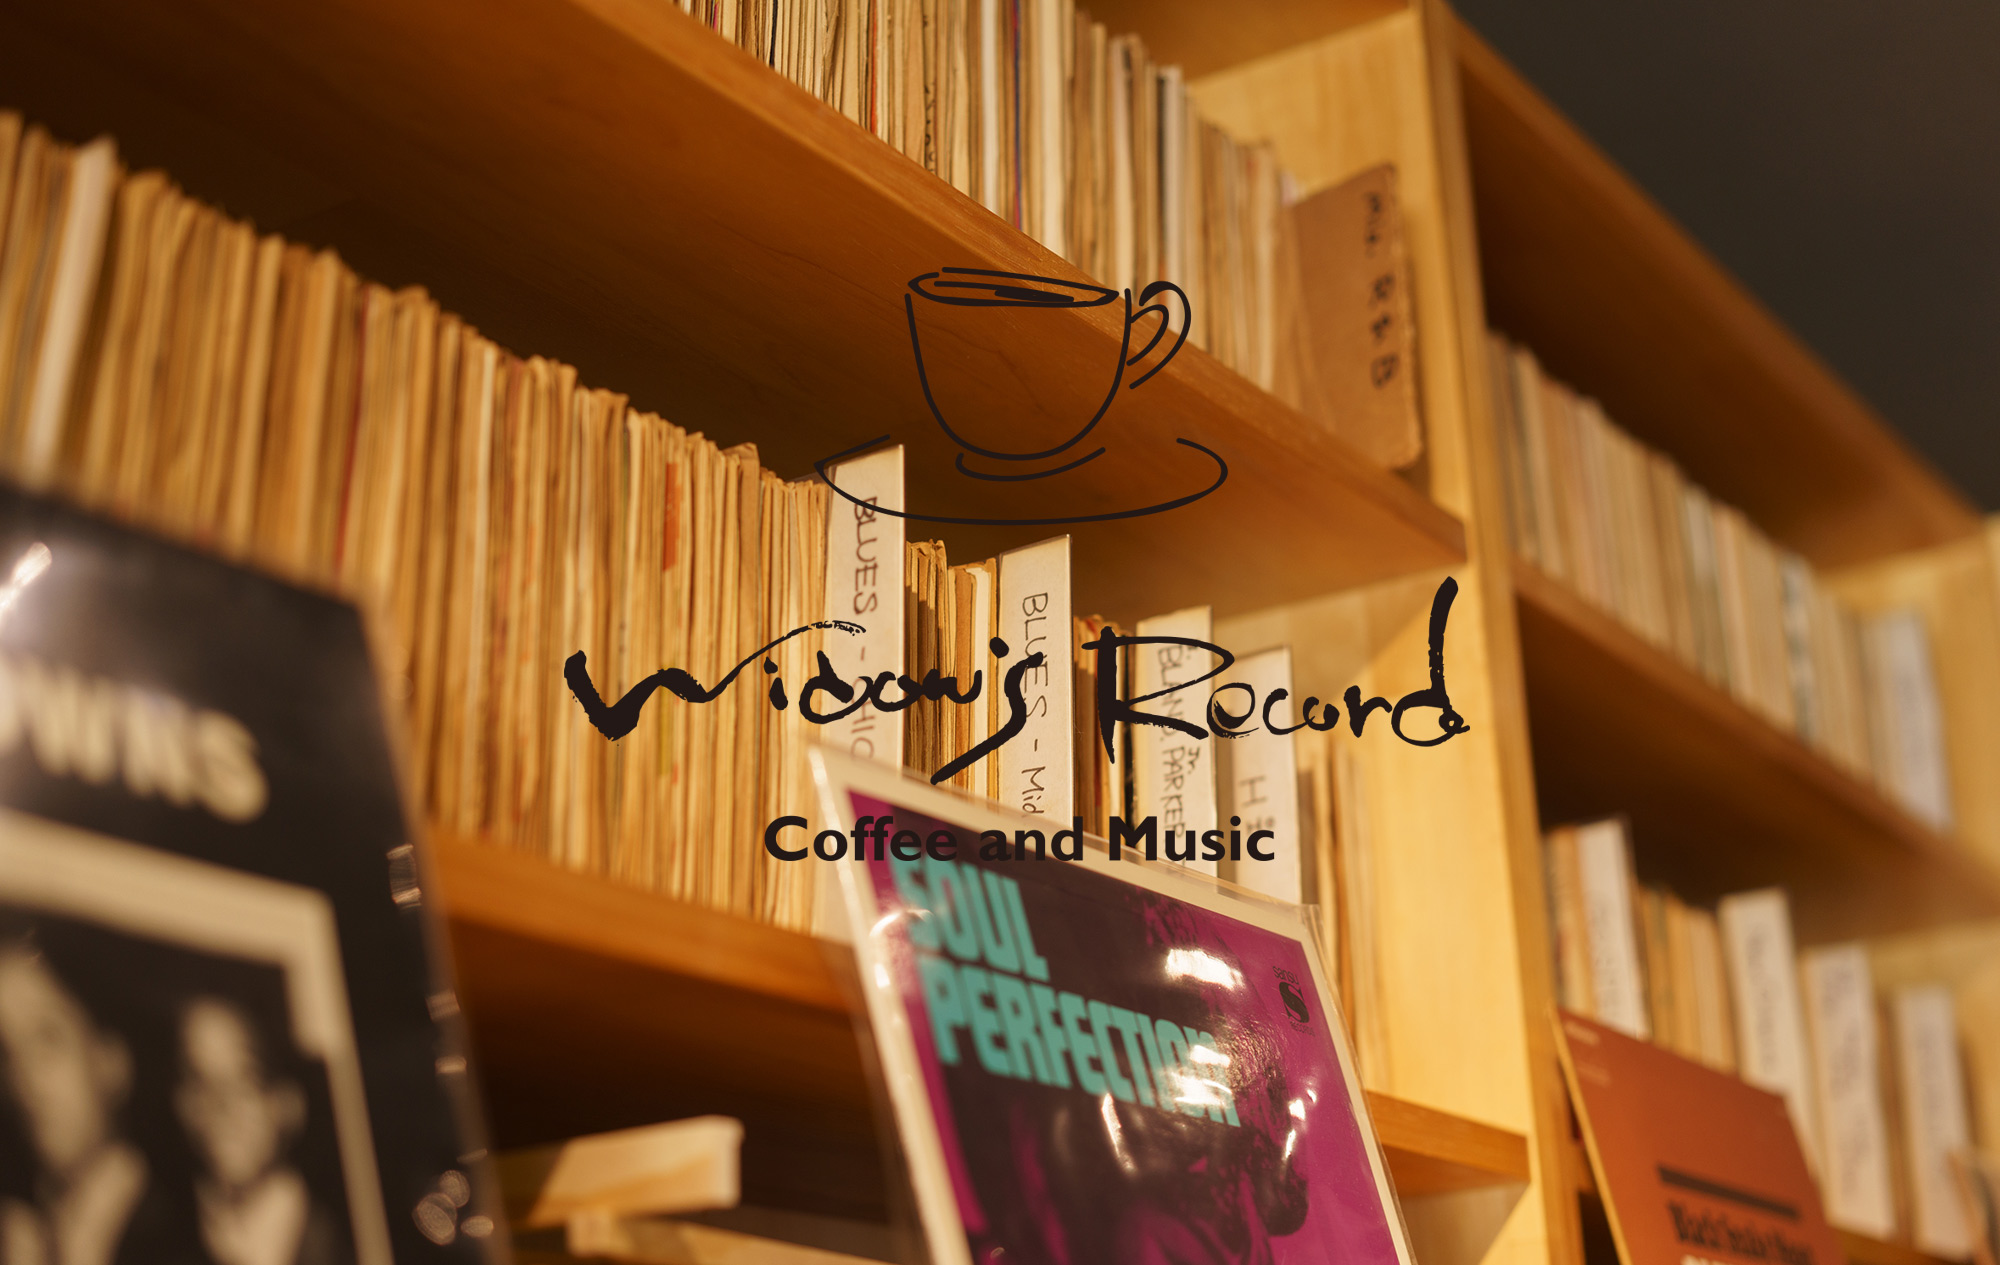 Coffee & Music  widows Record